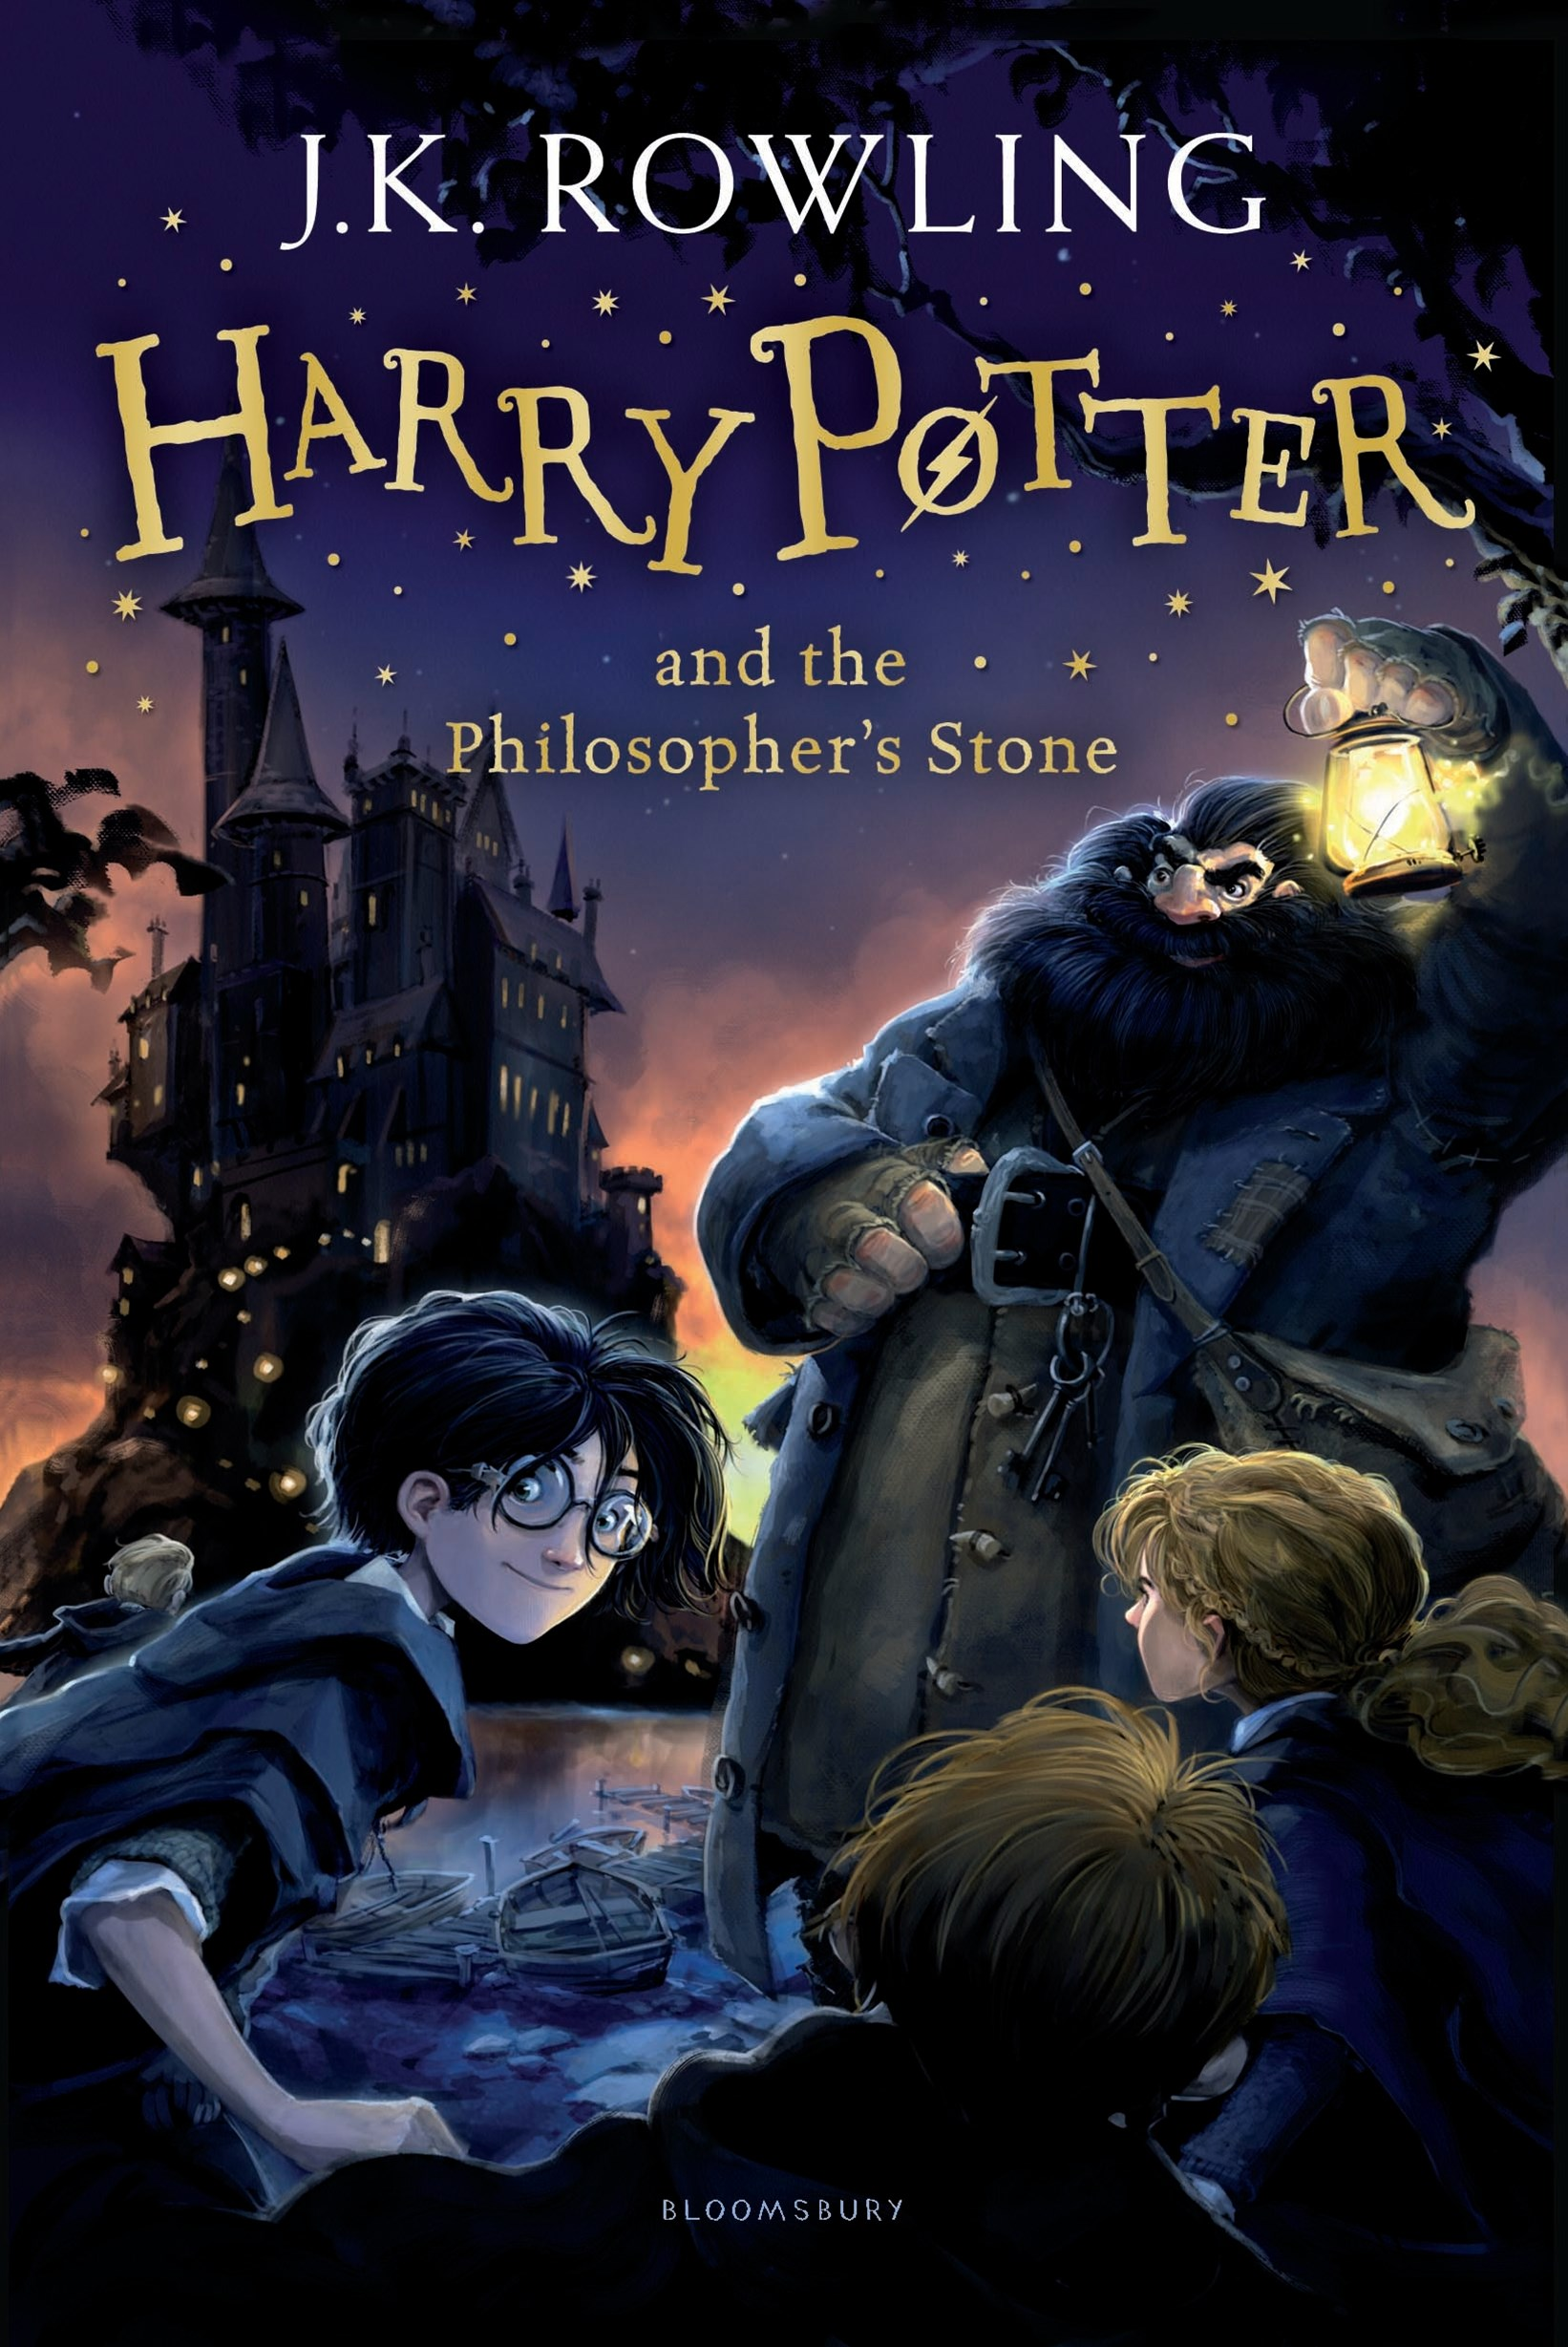 Harry Potter and the Philosopher's Stone (Harry Potter Book 1)